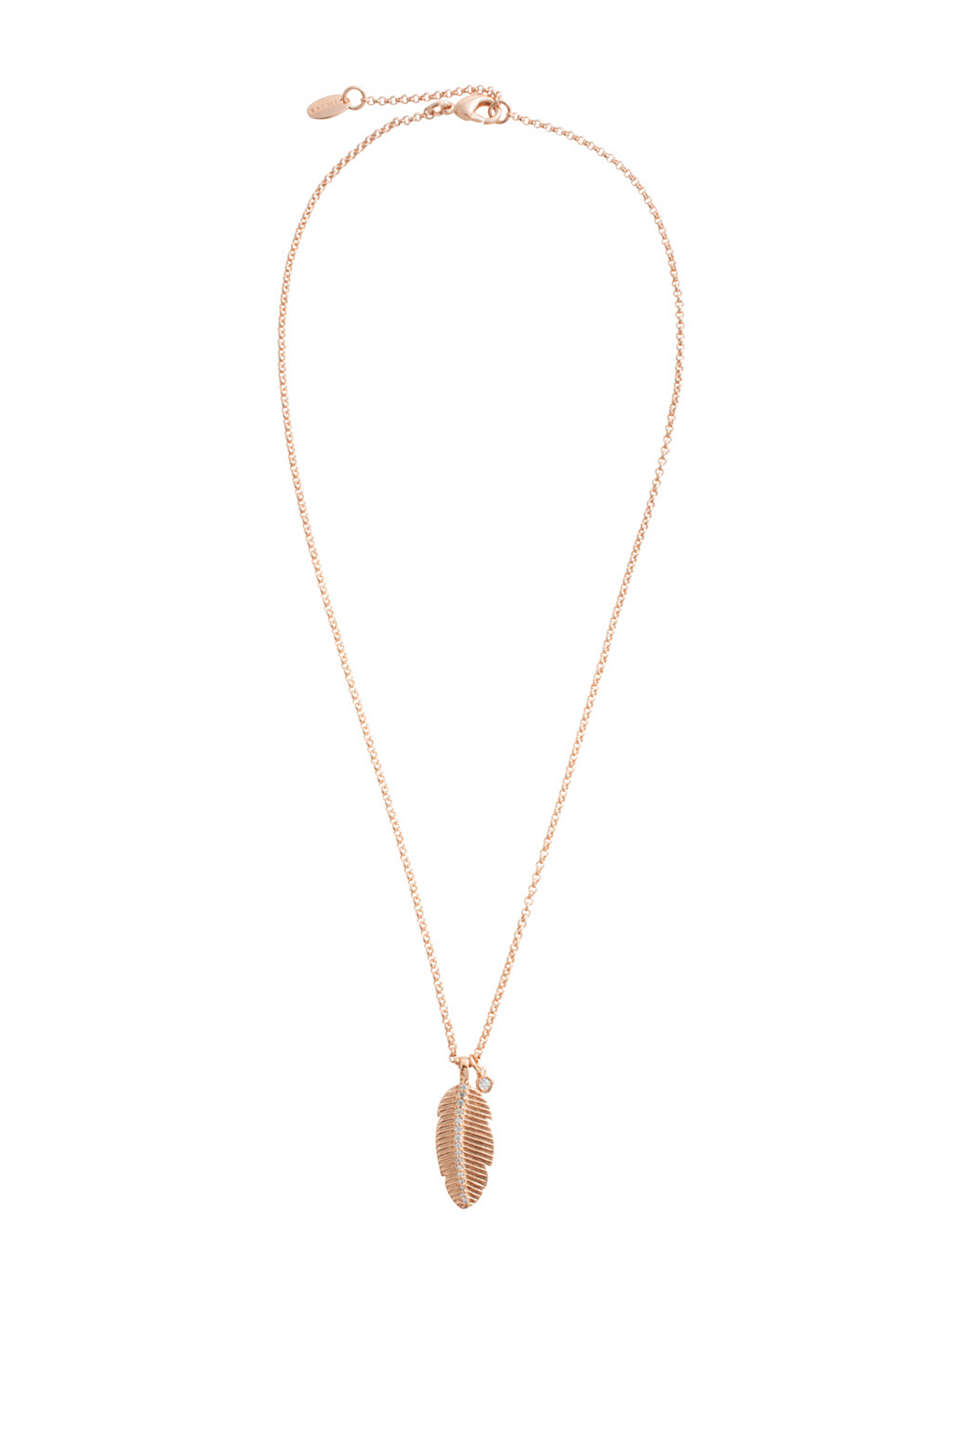 Necklace with elegant rose gold plating and two charms with sparkling zirconias